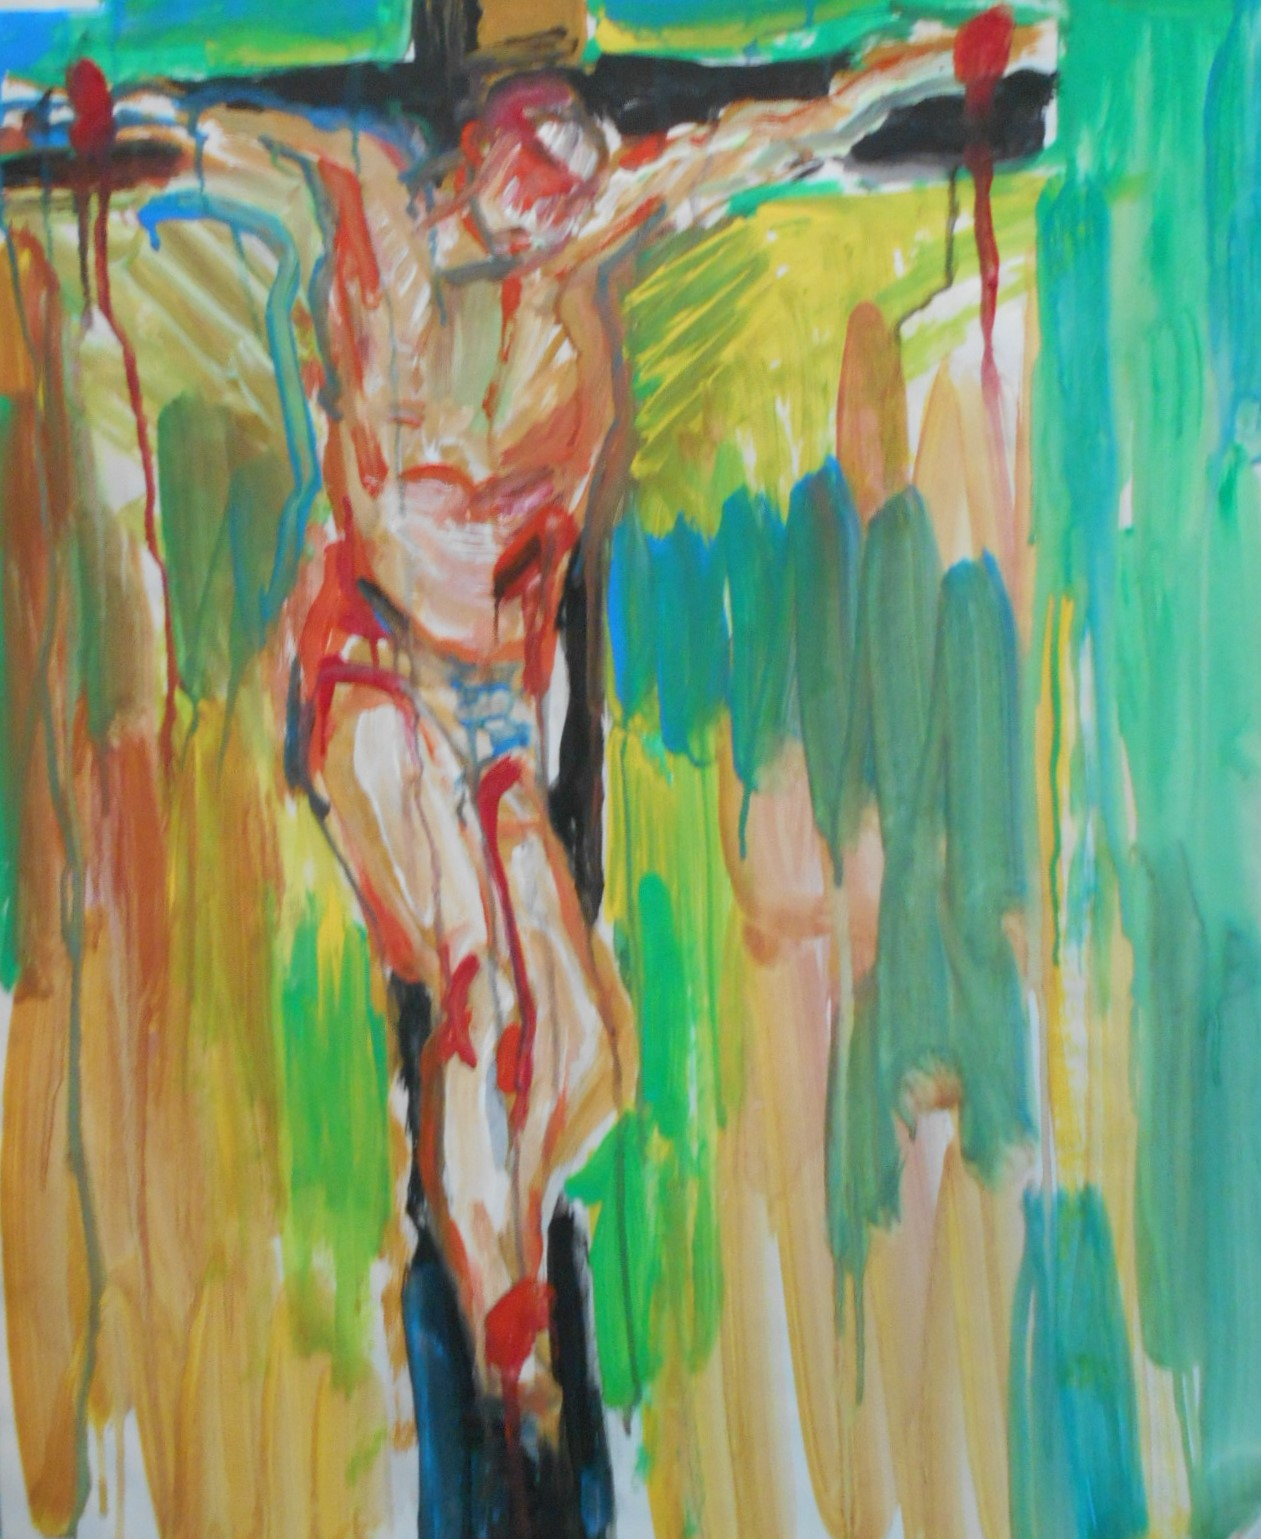 Jesus on the Cross 2